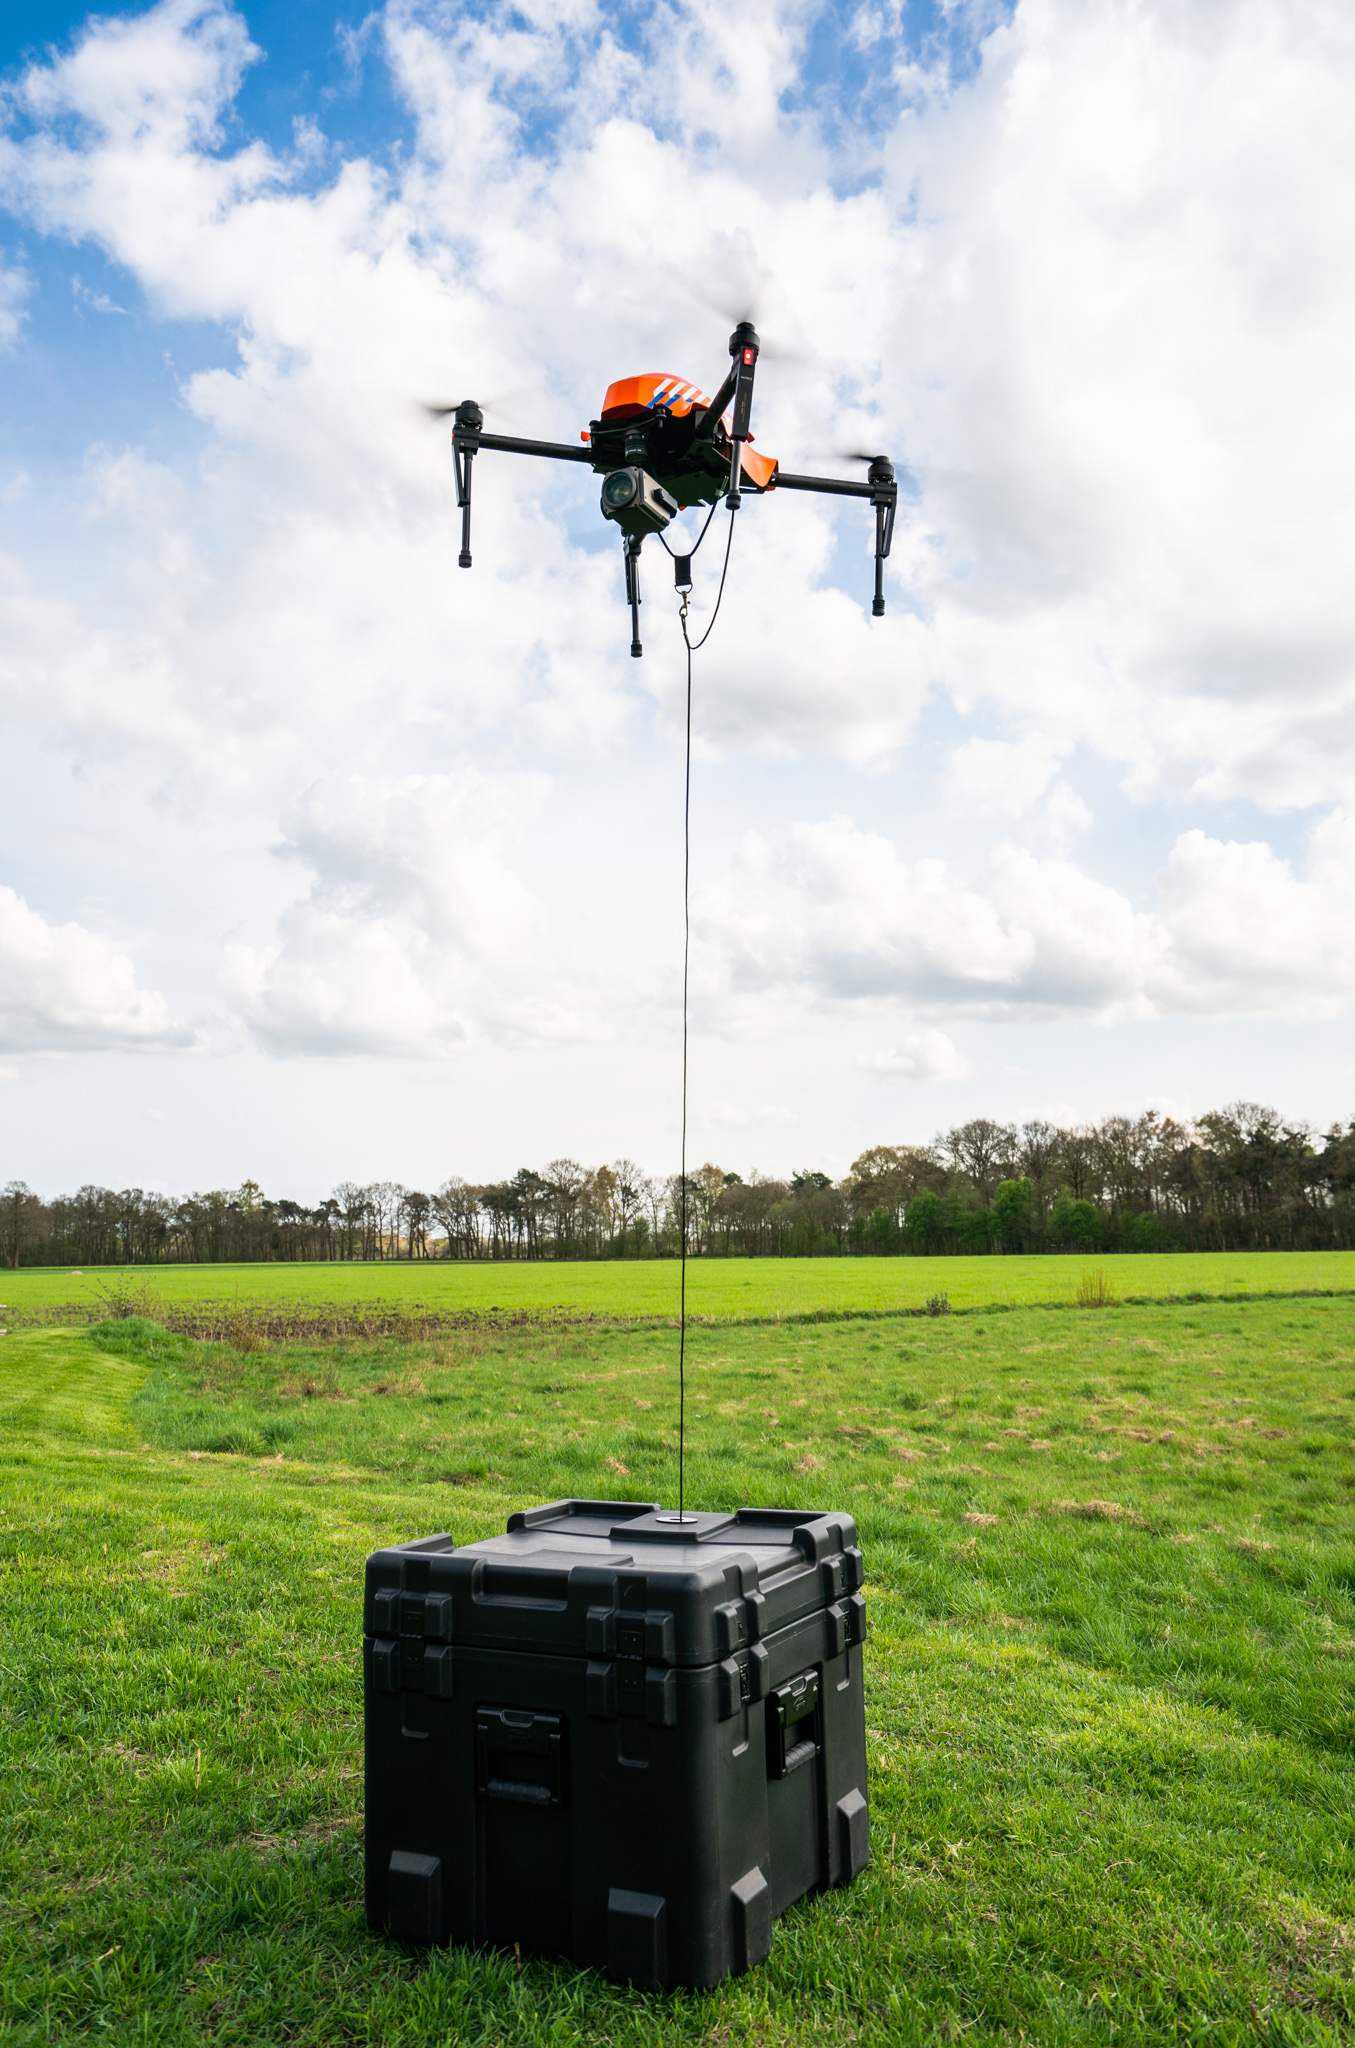 BENTELO - DronExpert Cablecopter , tethered drone. Kabeldrone editie : AL   foto Wouter Borre  WBE20180416